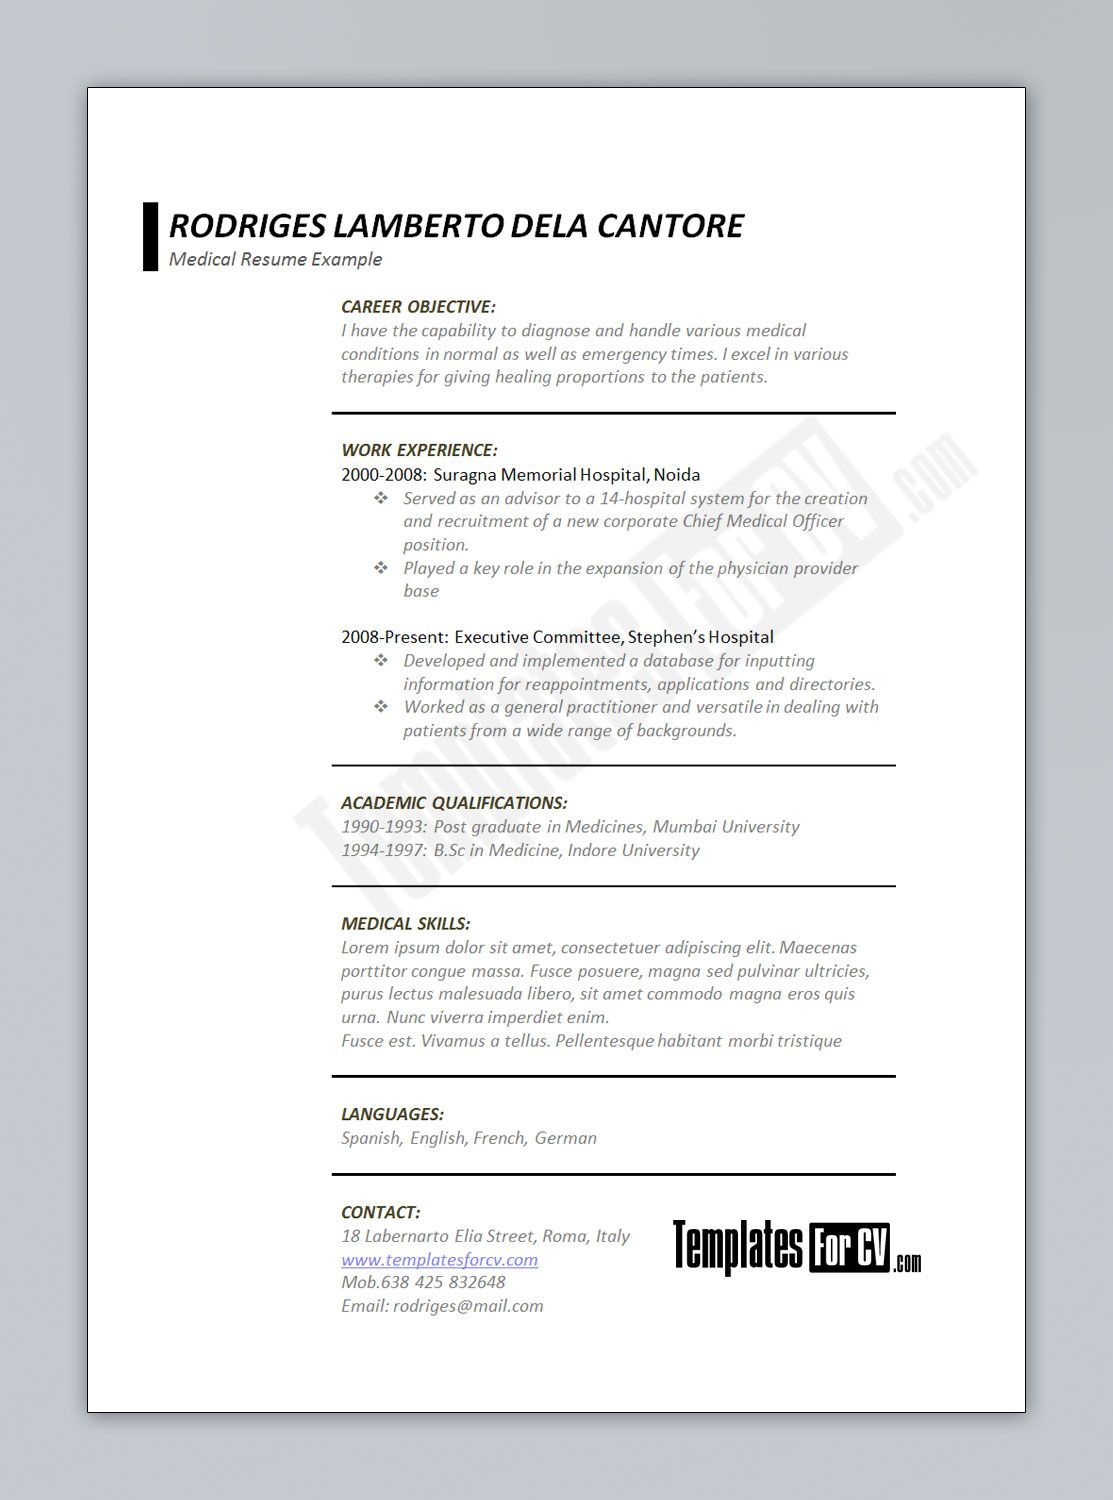 Cv Template Junior Resume examples, Cv template, Cover